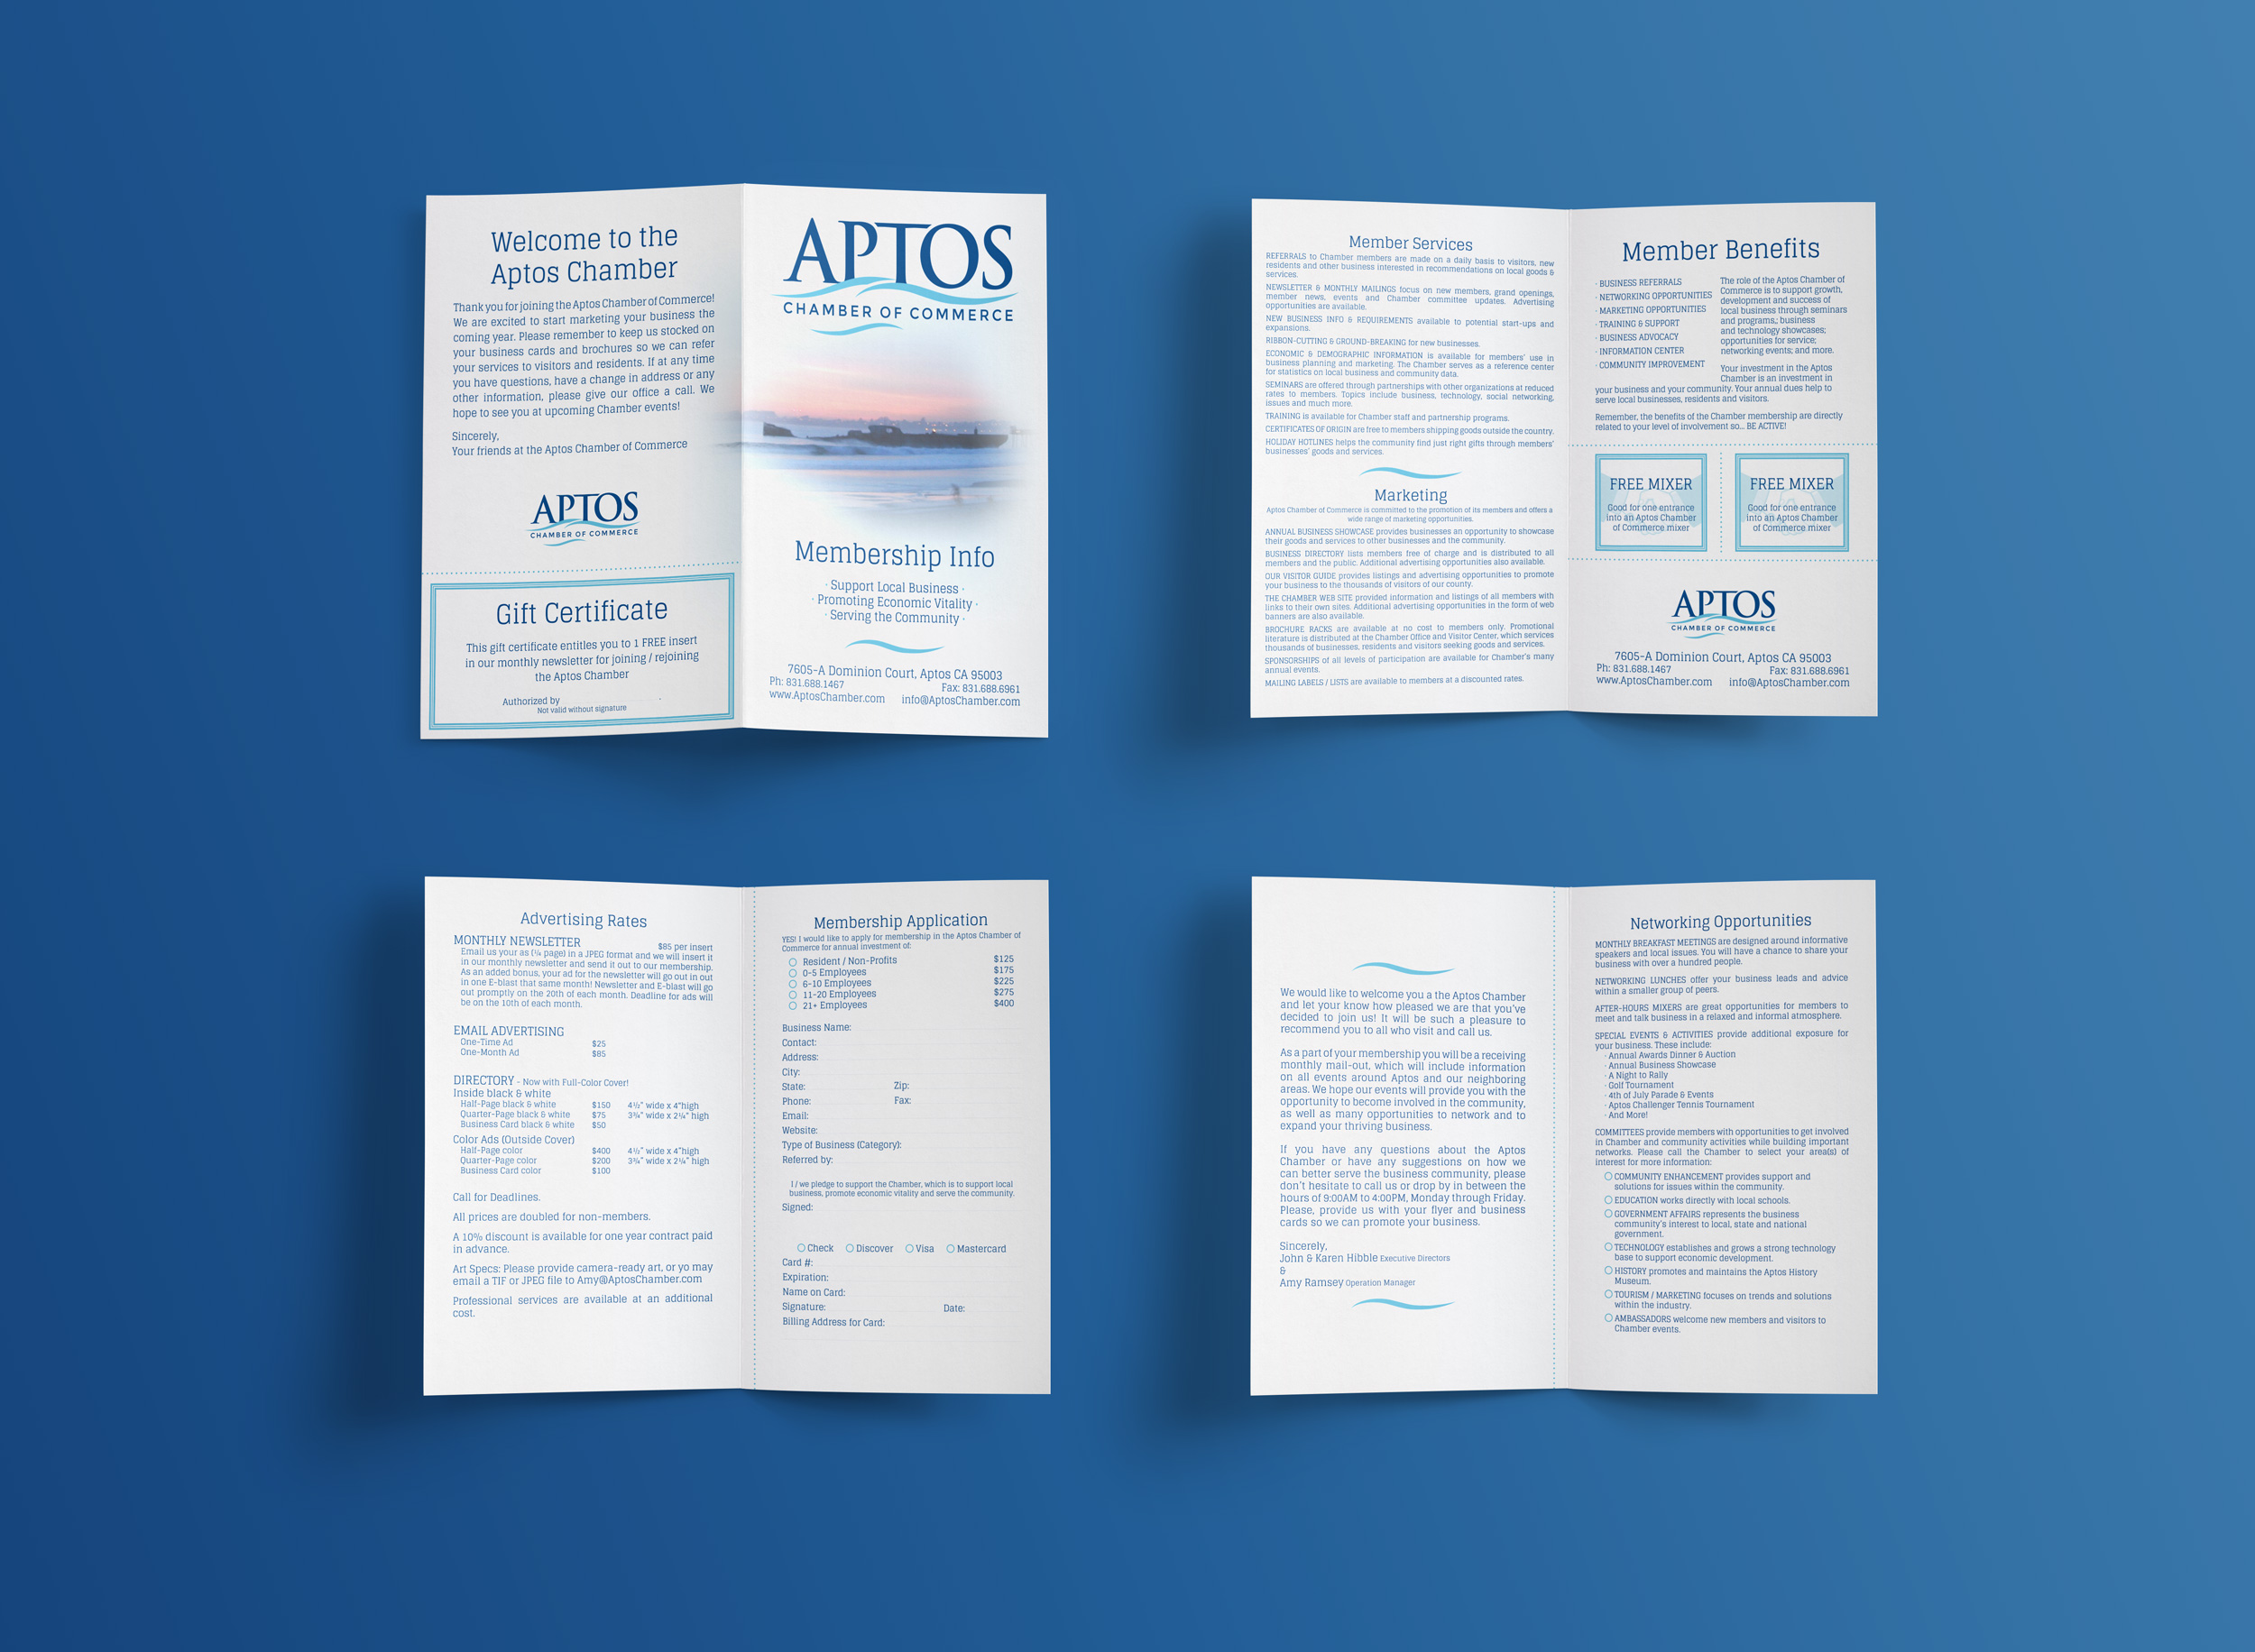 Aptos Chamber of Commerce - membership booklet